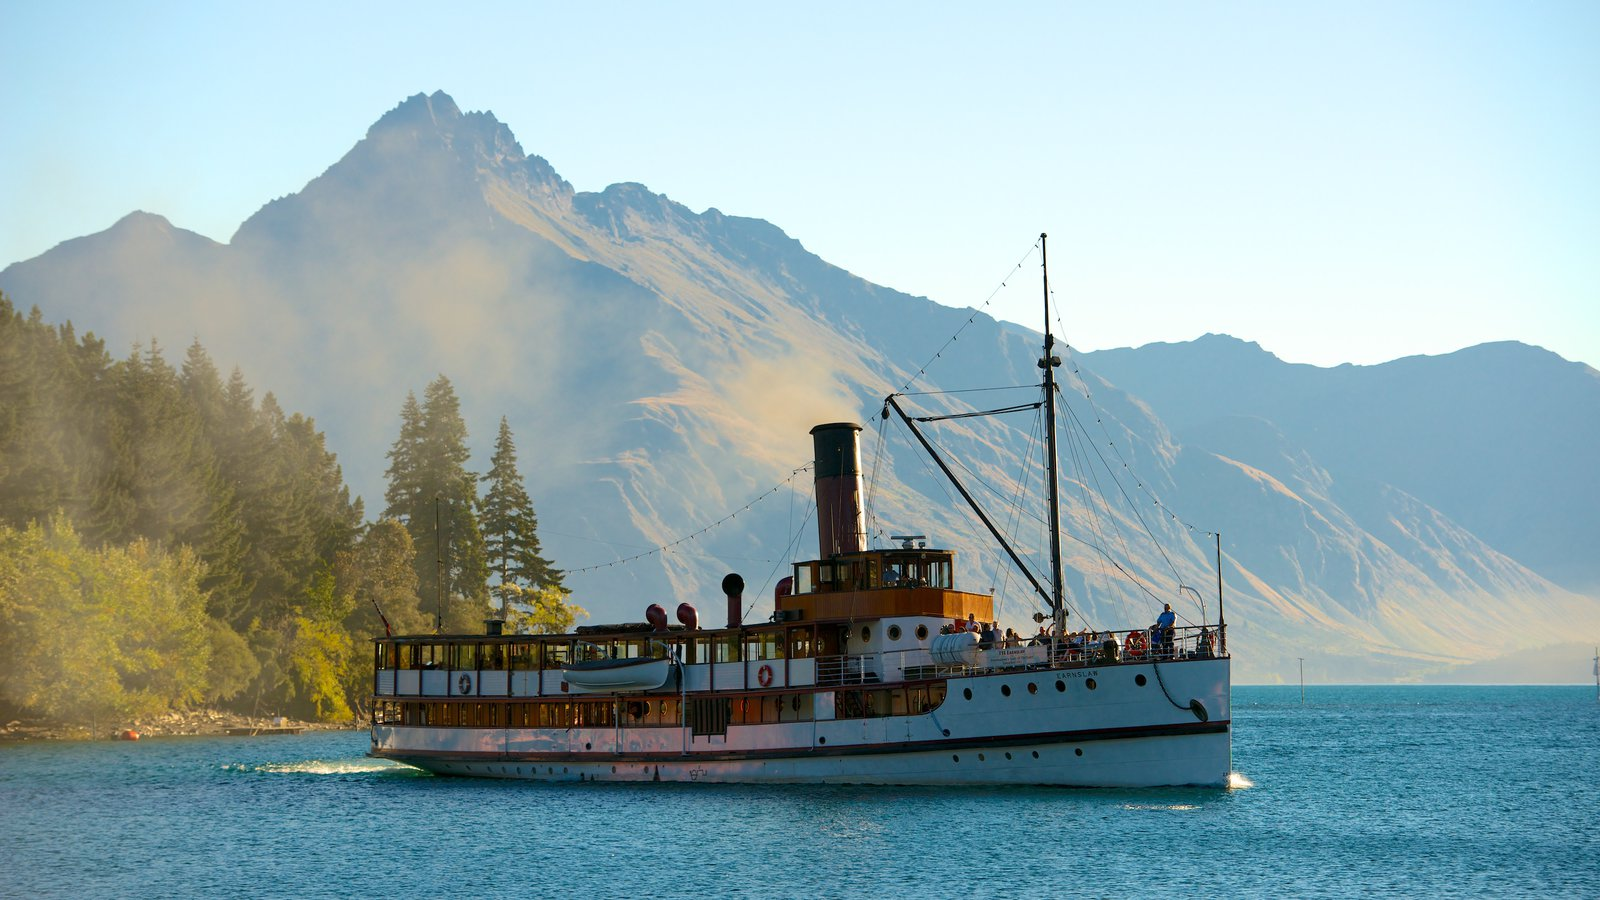 TSS Earnslaw Steamship featuring a ferry, mountains and general coastal views